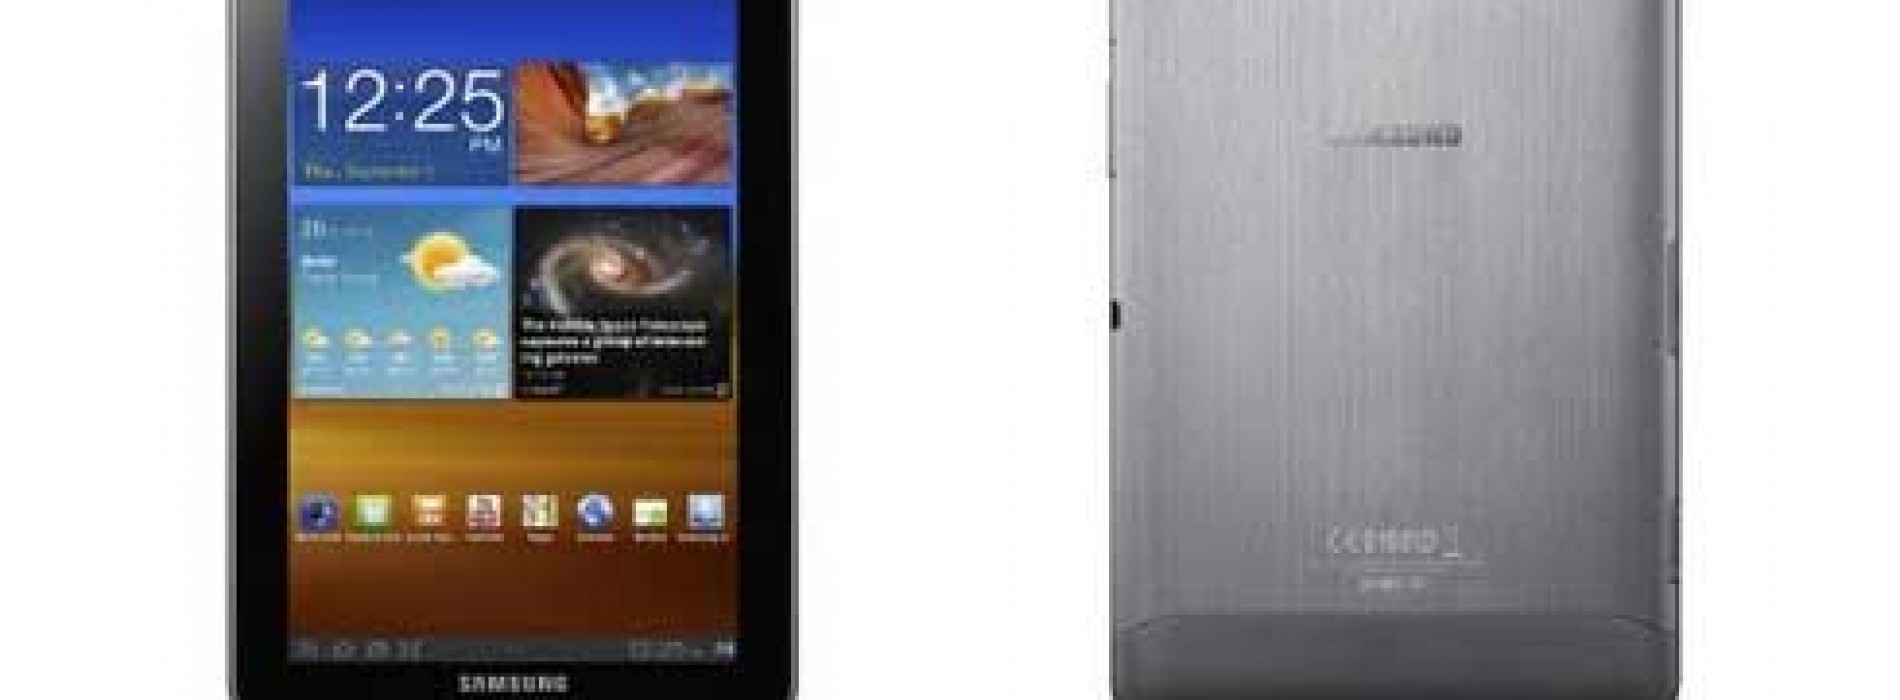 Samsung Galaxy Tab 7.7 hitting the U.S. soon?